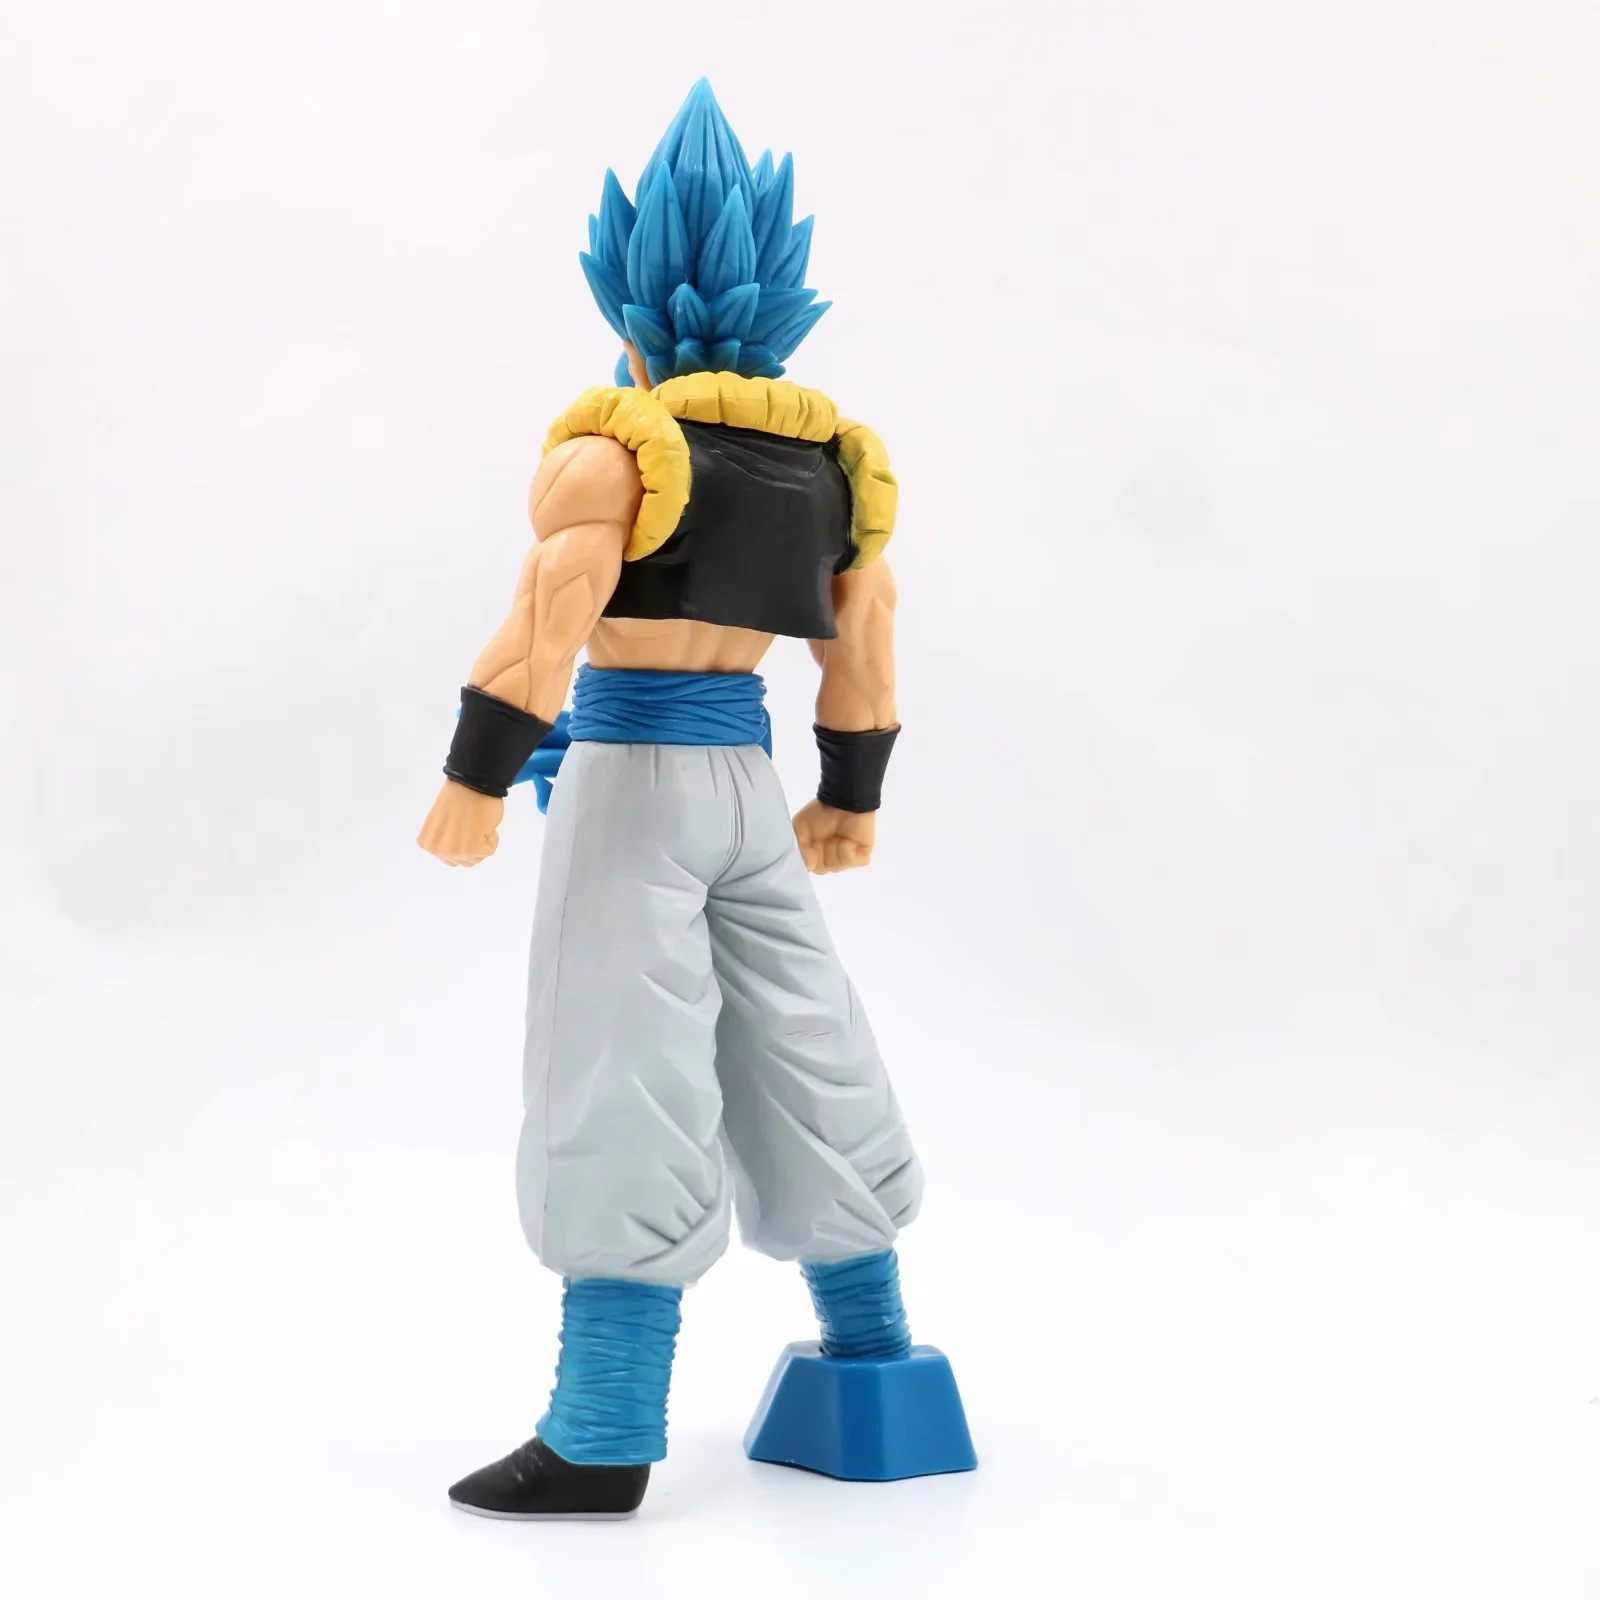 Collections Anime Jouets Dragon Ball Z Broly Blue Hair Figurines Statues 21cm